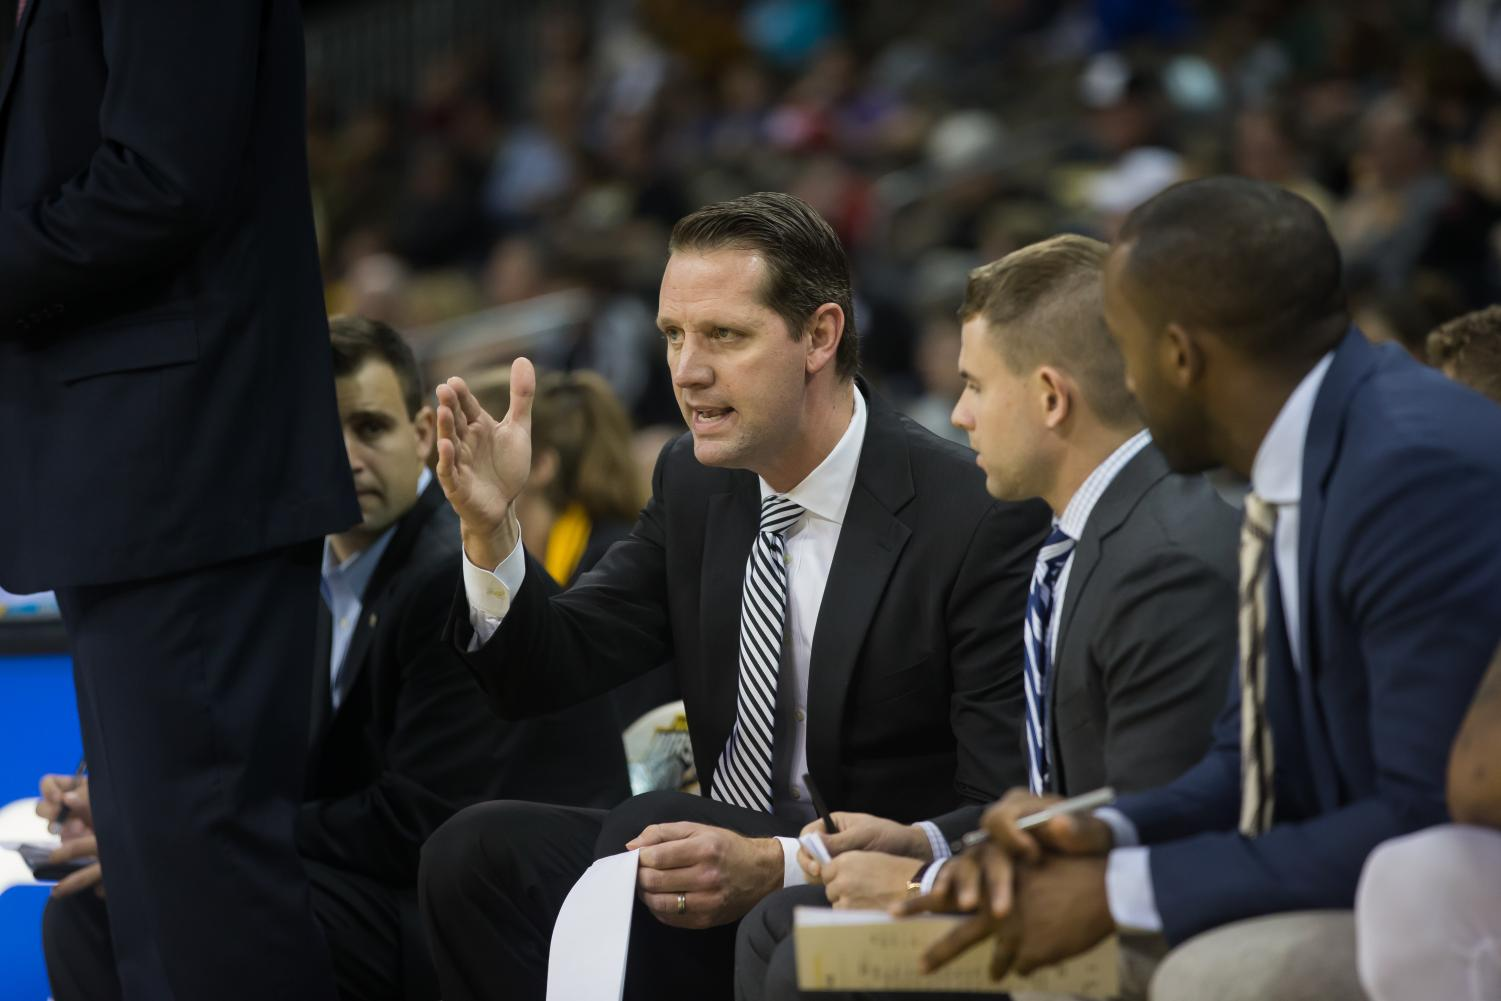 NKU+Men%27s+basketball+coaches+talk+during+the+game+against+Wilmington.